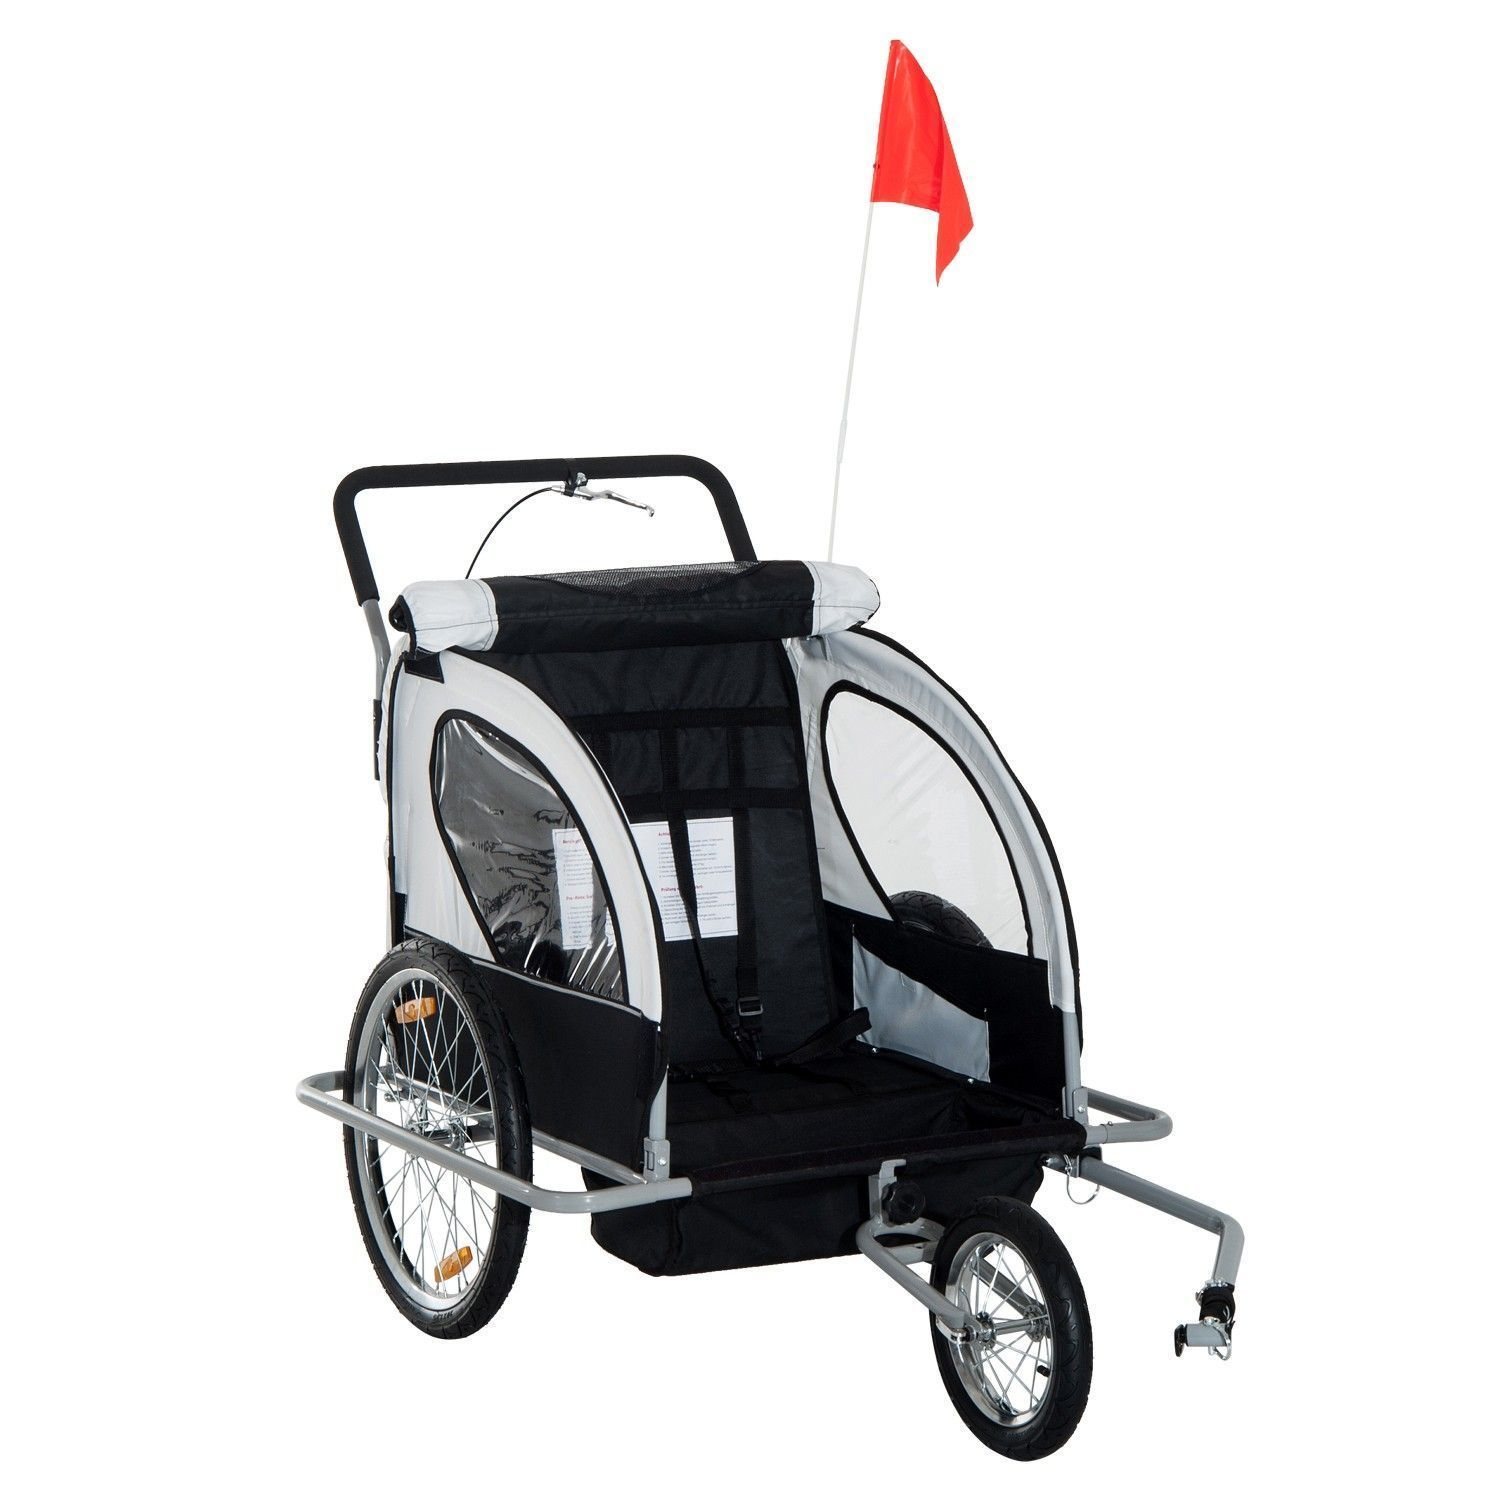 Child Bike Trailer and Stroller Double 2in1 Black